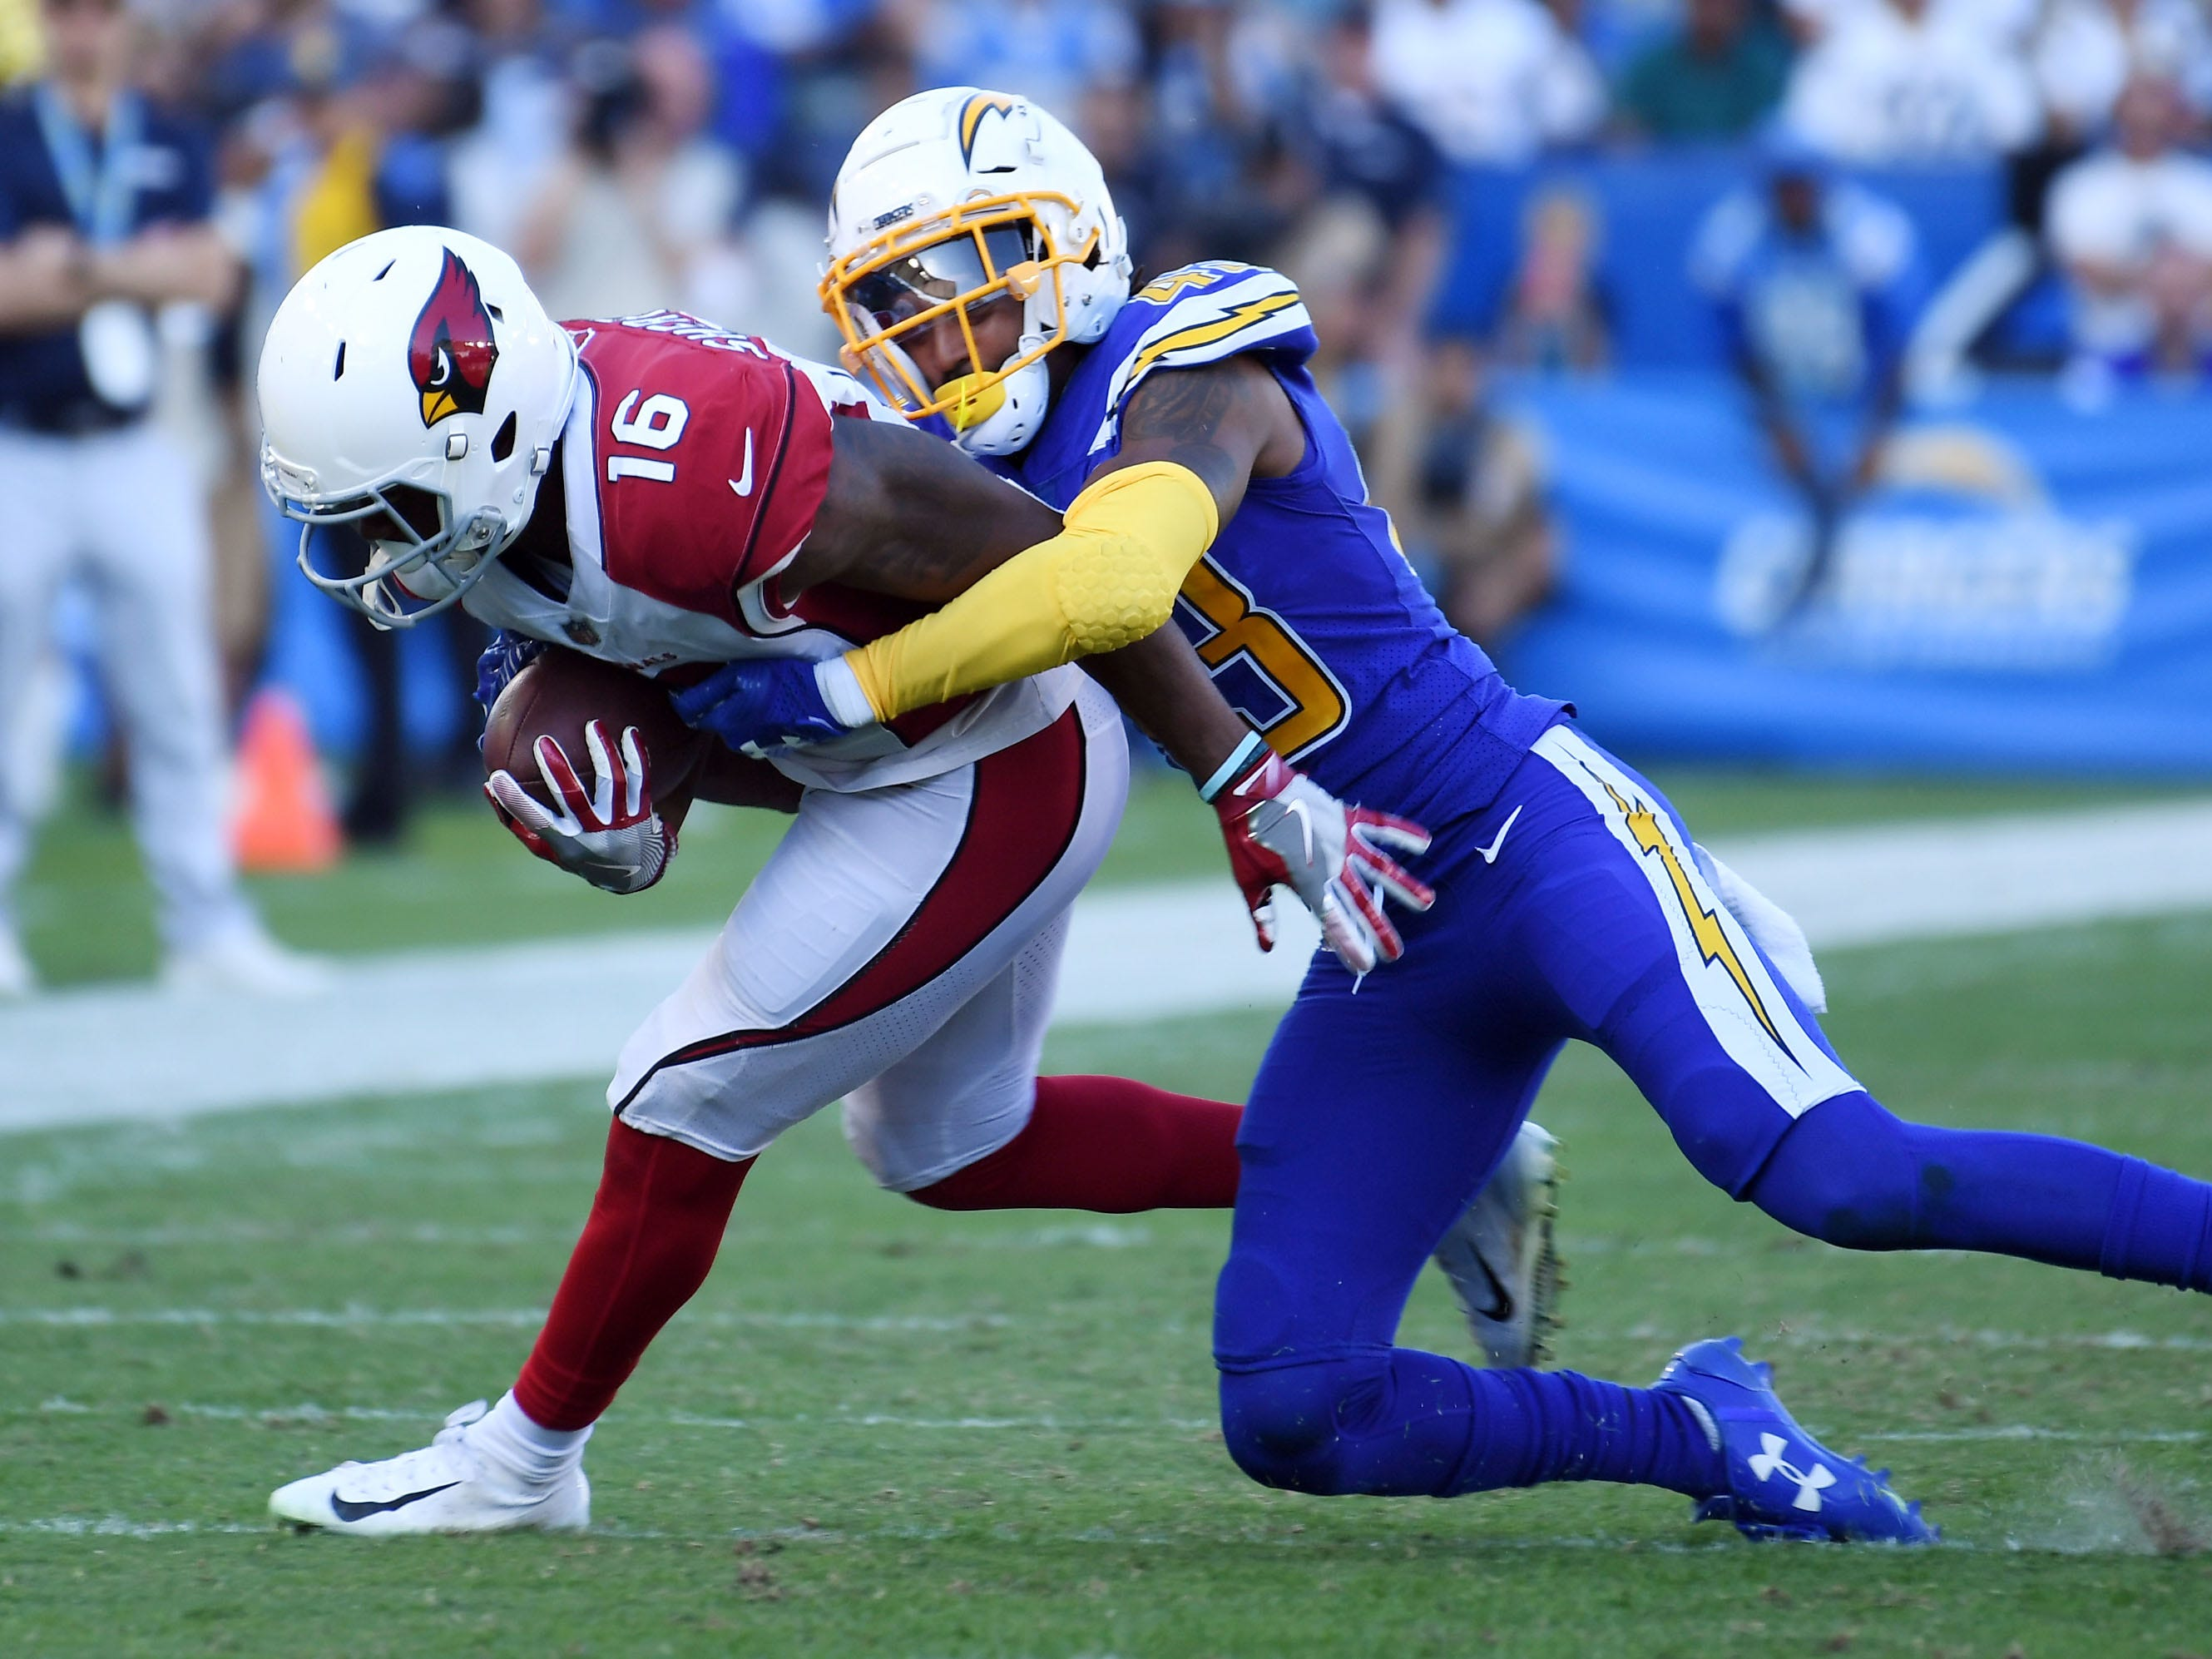 Nov 25, 2018; Carson, CA, USA; Arizona Cardinals wide receiver Trent Sherfield (16) is tackled by Los Angeles Chargers cornerback Michael Davis (43) in the first half at the StubHub Center. Mandatory Credit: Richard Mackson-USA TODAY Sports